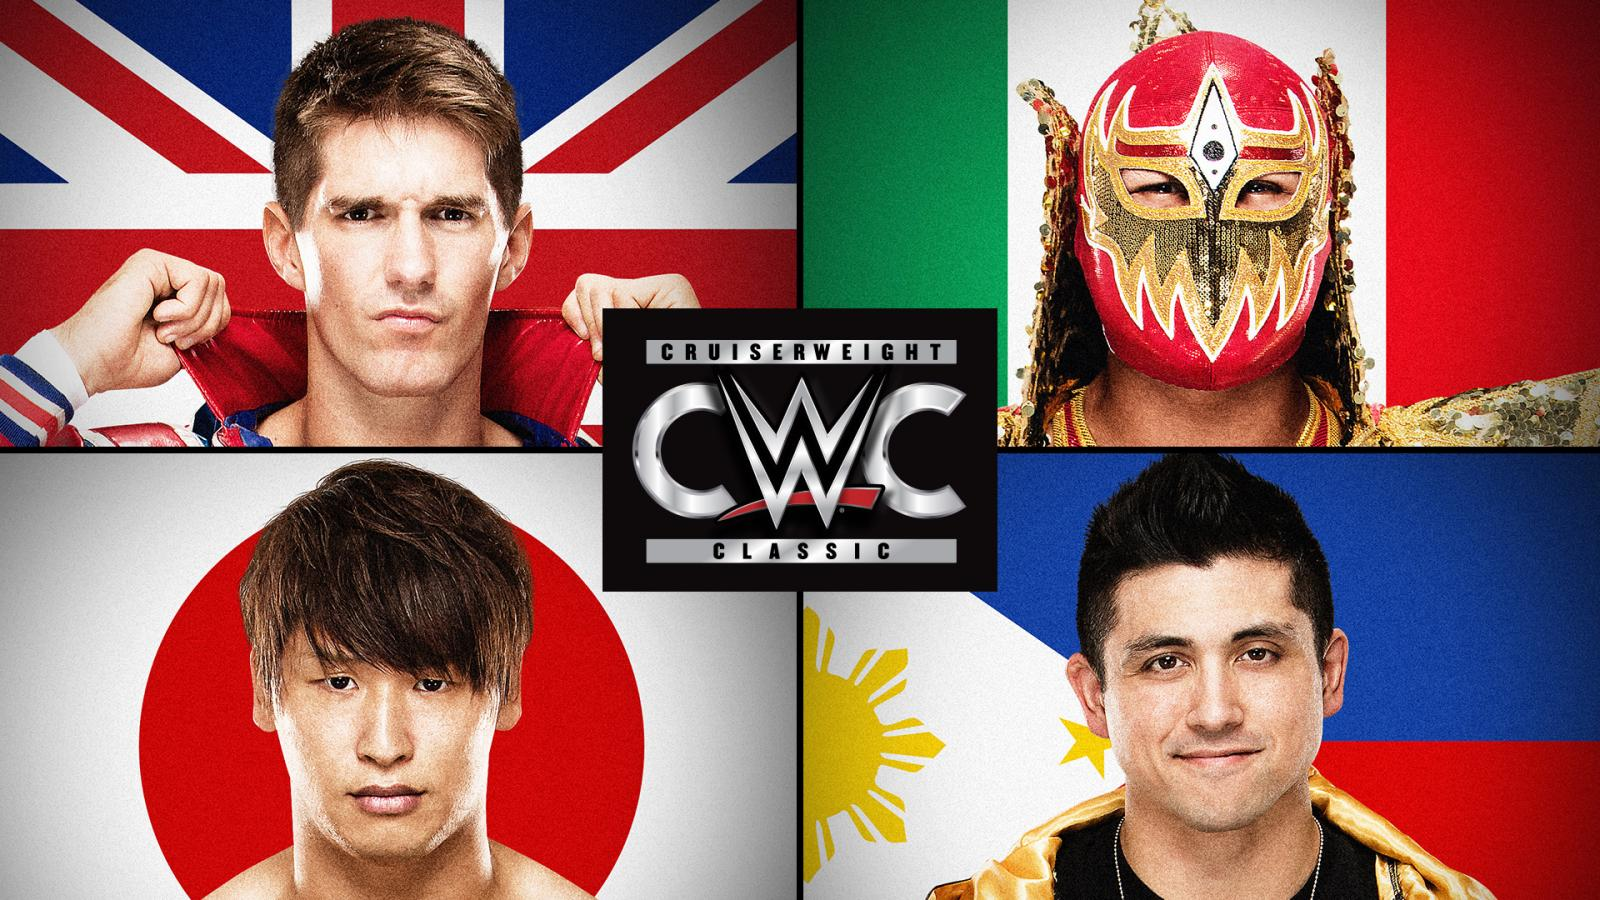 WWE Cruiserweight Classic Results 9/14/16